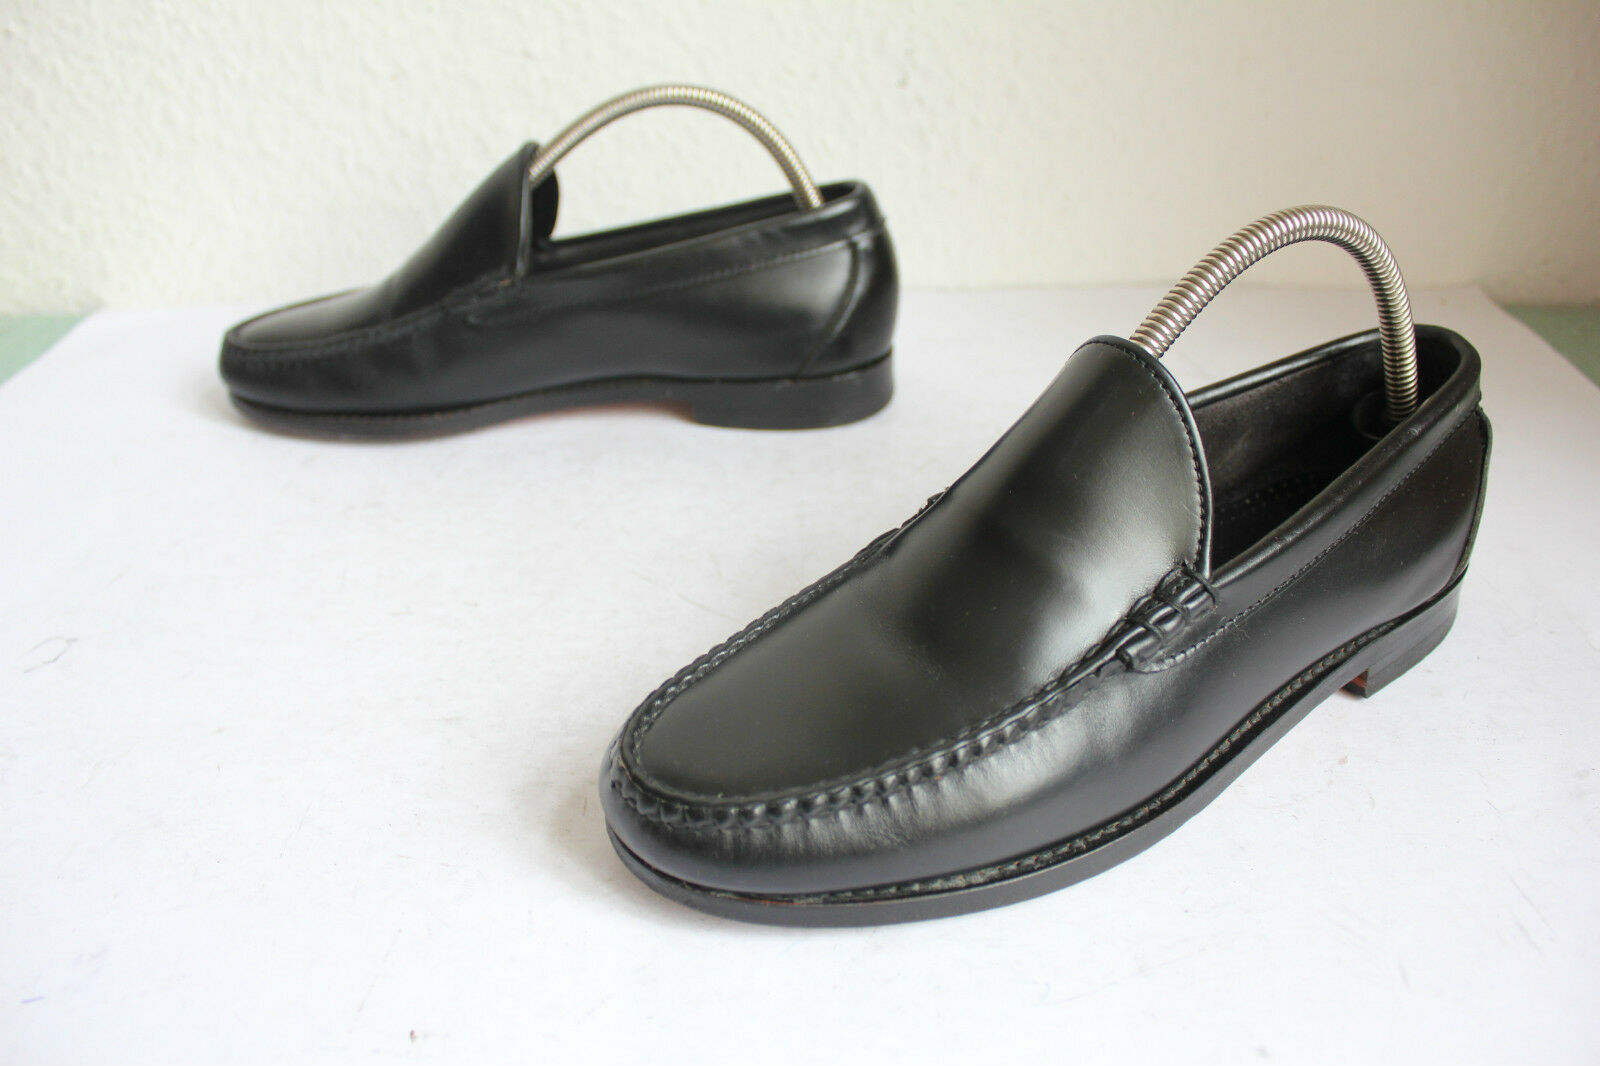 Allen Edmonds Luxus Slipper Schuhe Voll Voll Voll Echtleder Schwarz 40-40,5 made in USA fd82a0